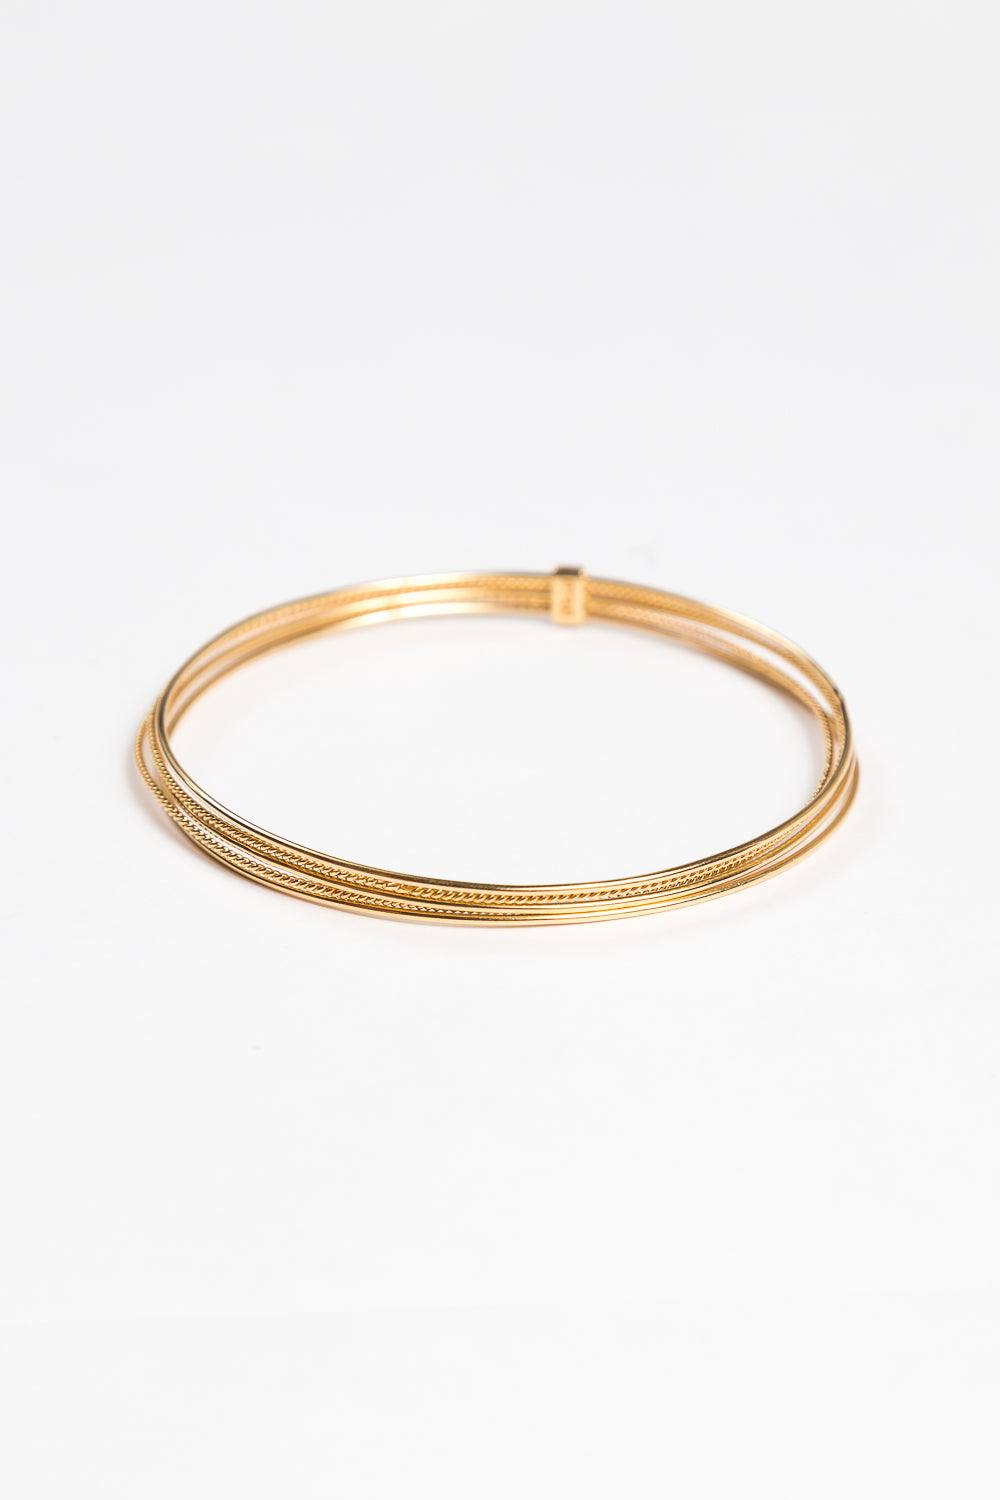 by w ltd itan gold jewels lined in bangles view pvt twist bangle y purity